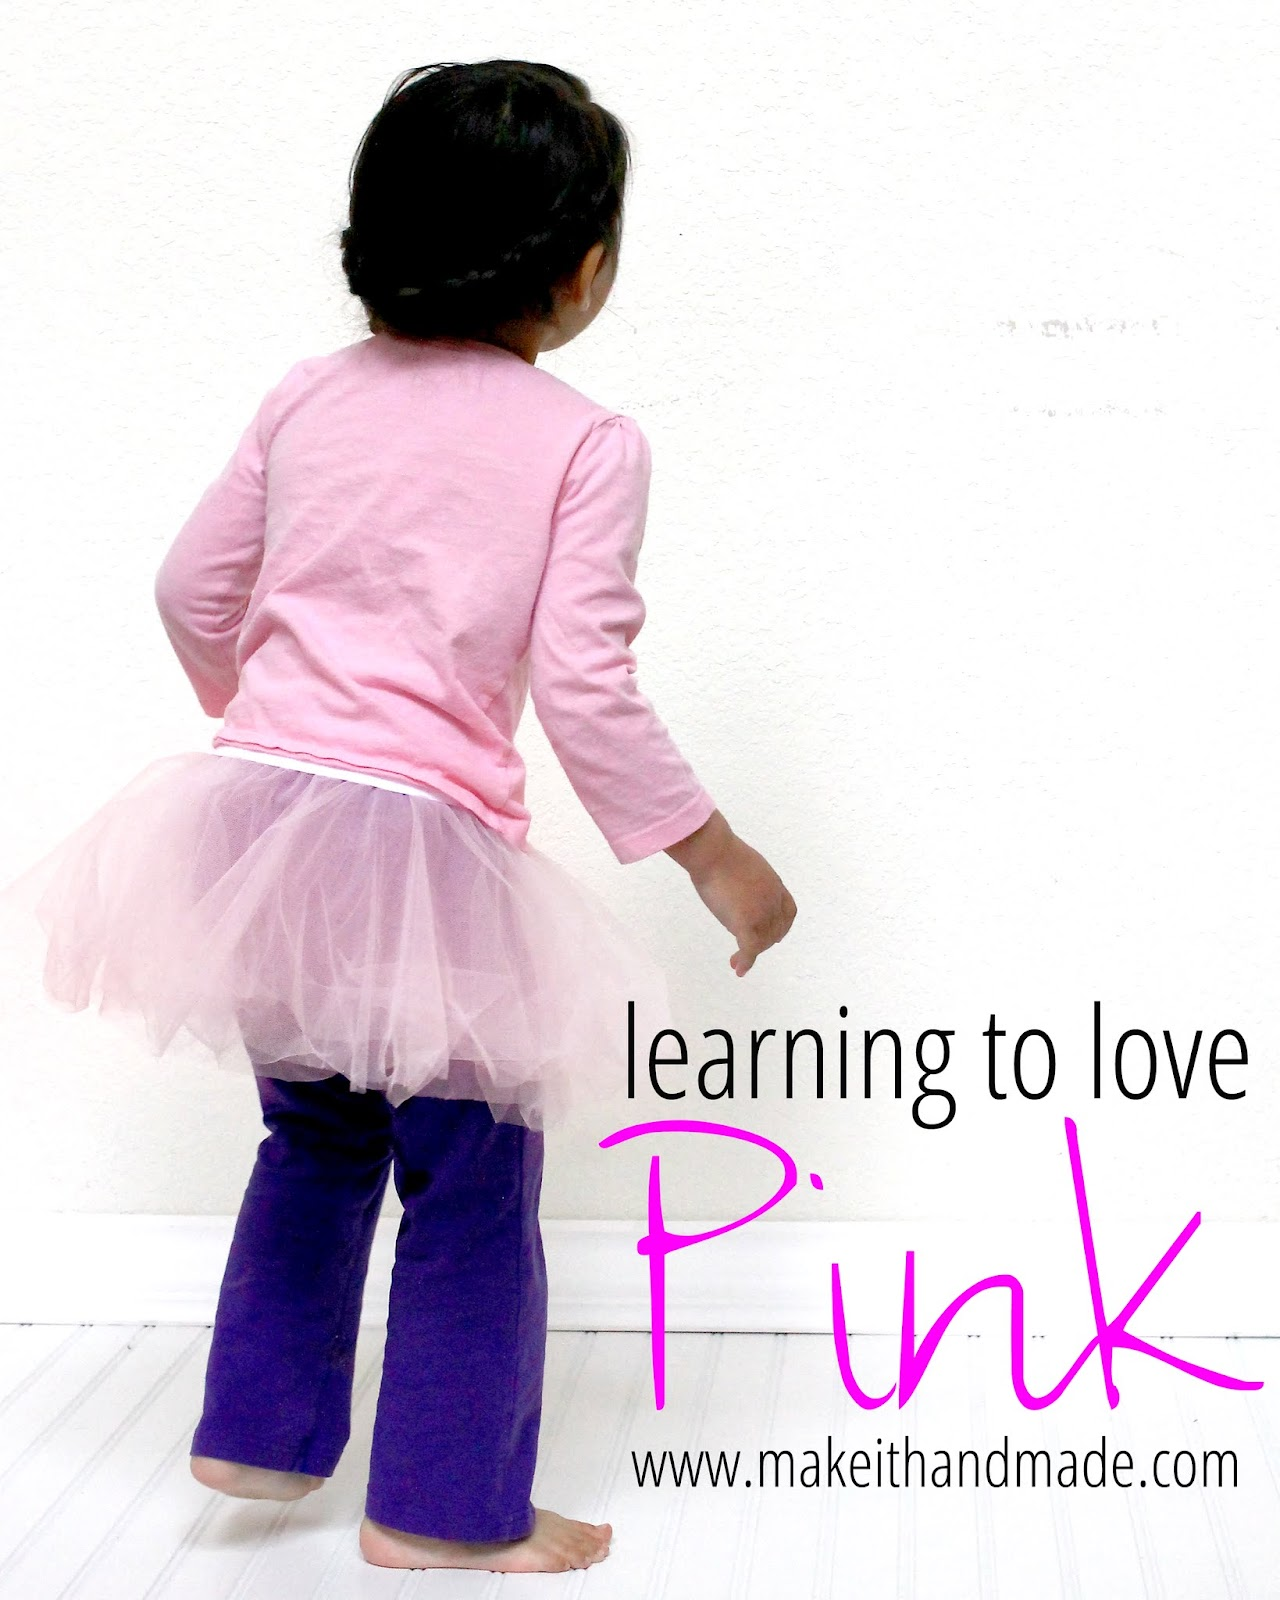 Sometimes the first step in nurturing your child's talents is fully embracing them for who they are... pink and all.